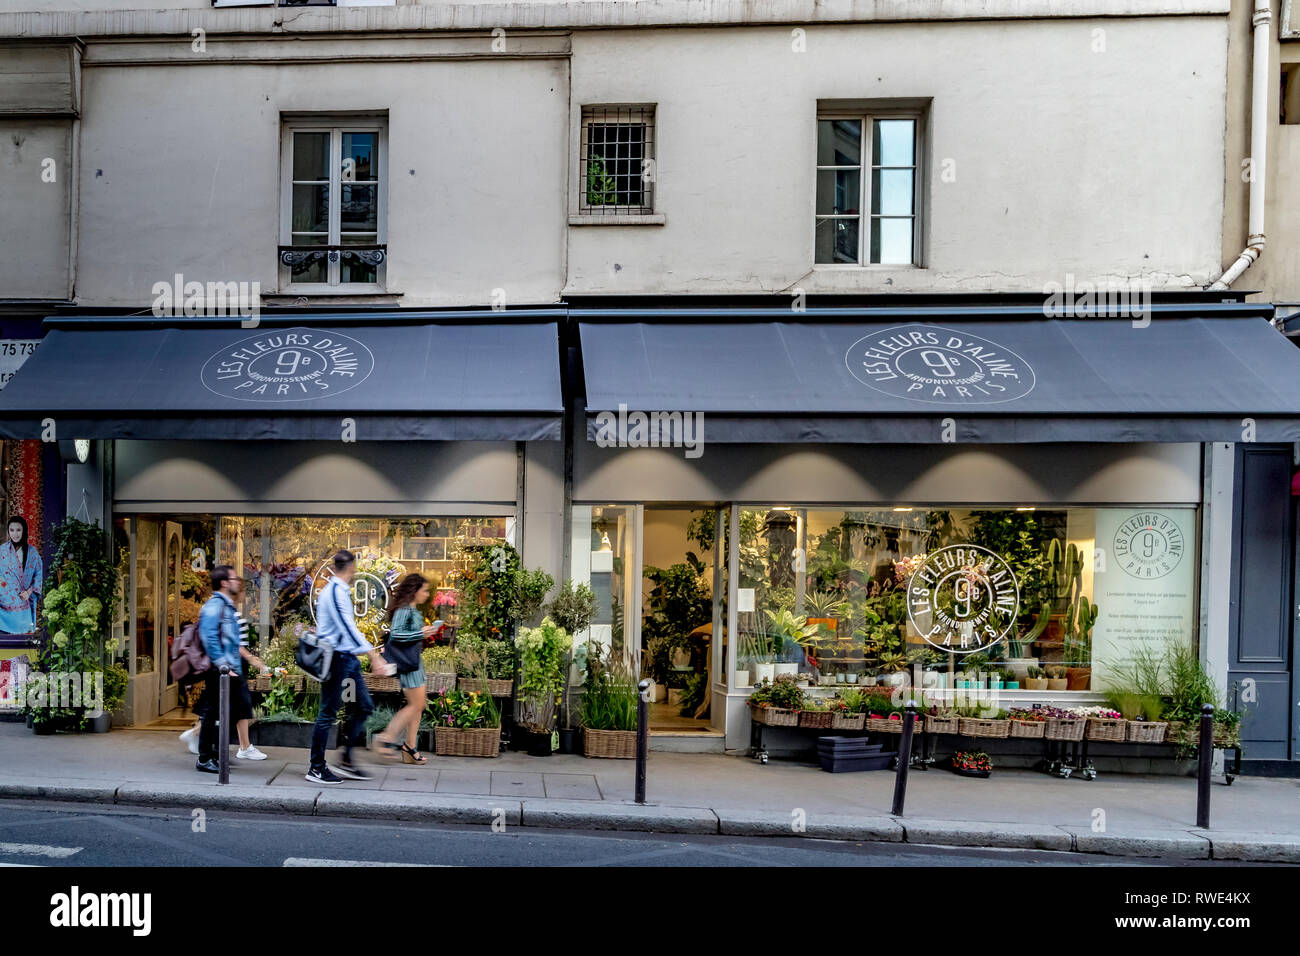 Les Fleurs d'Aline A florist shop on  Rue Notre Dame de Lorette in The St Georges ,9th arrondissement area of Paris Stock Photo